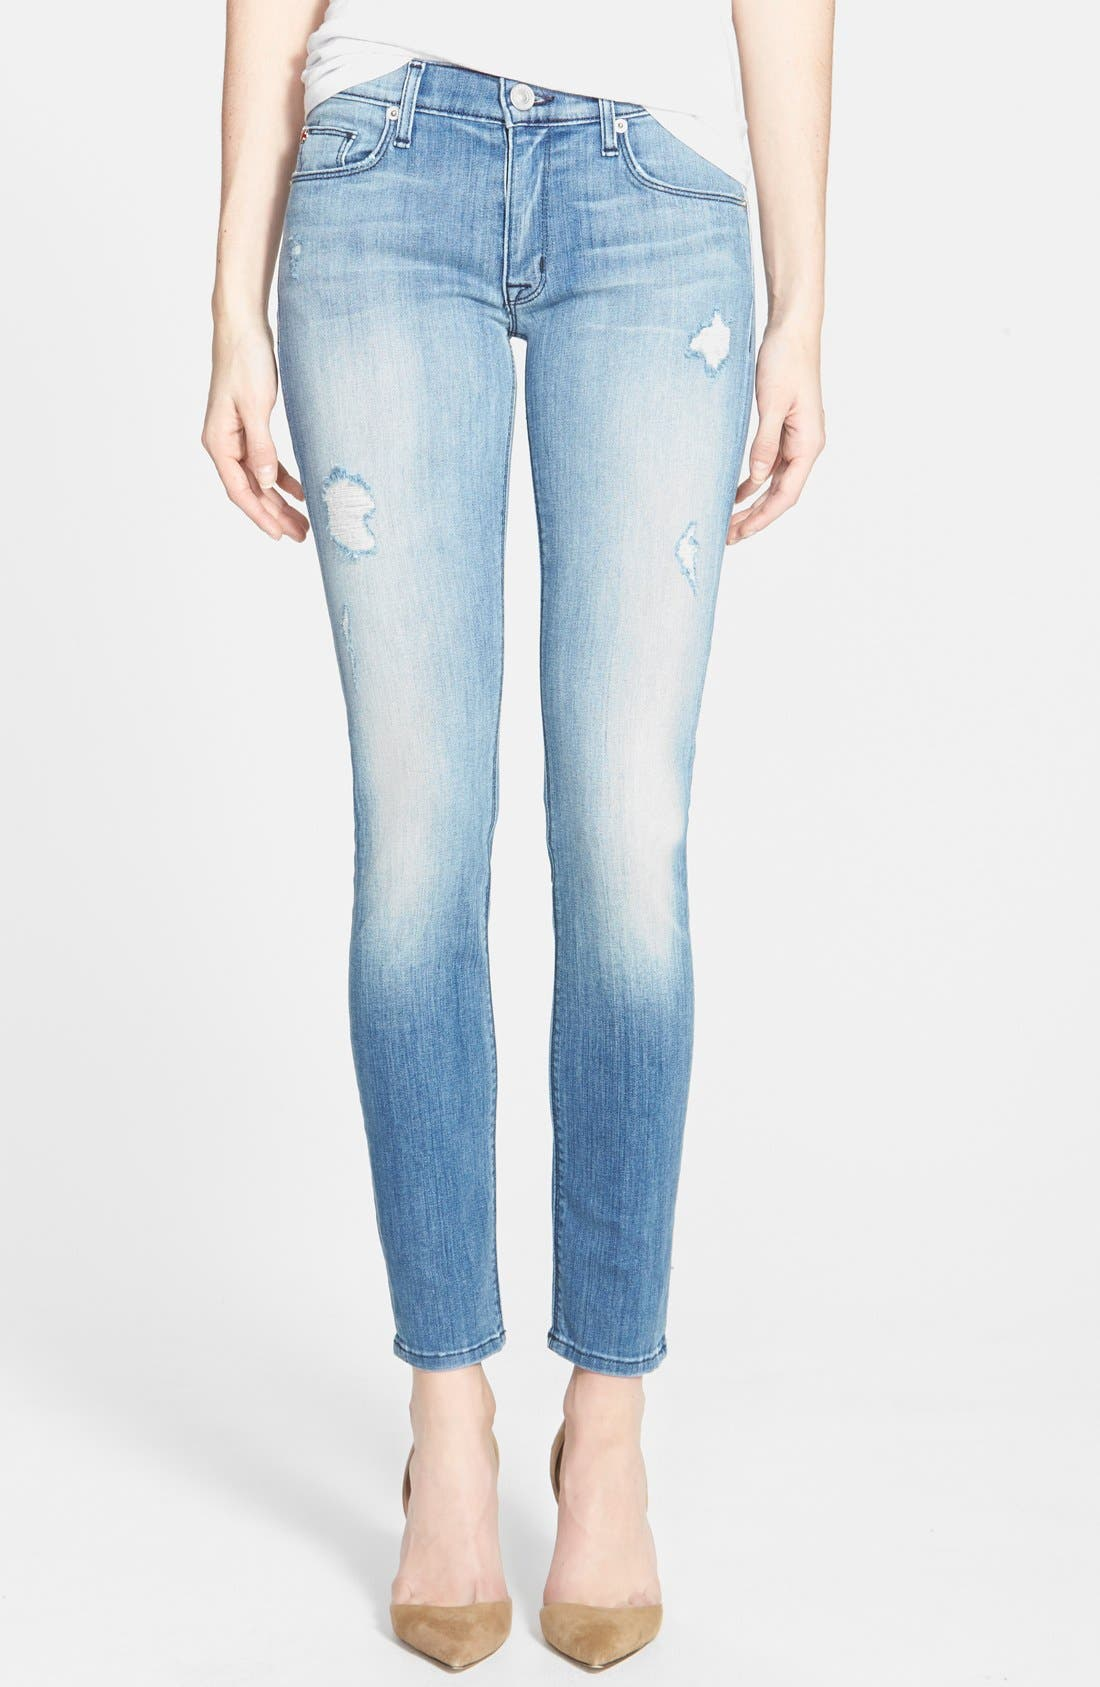 Alternate Image 1 Selected - Hudson Jeans 'Krista' Super Skinny Jeans (Seized)